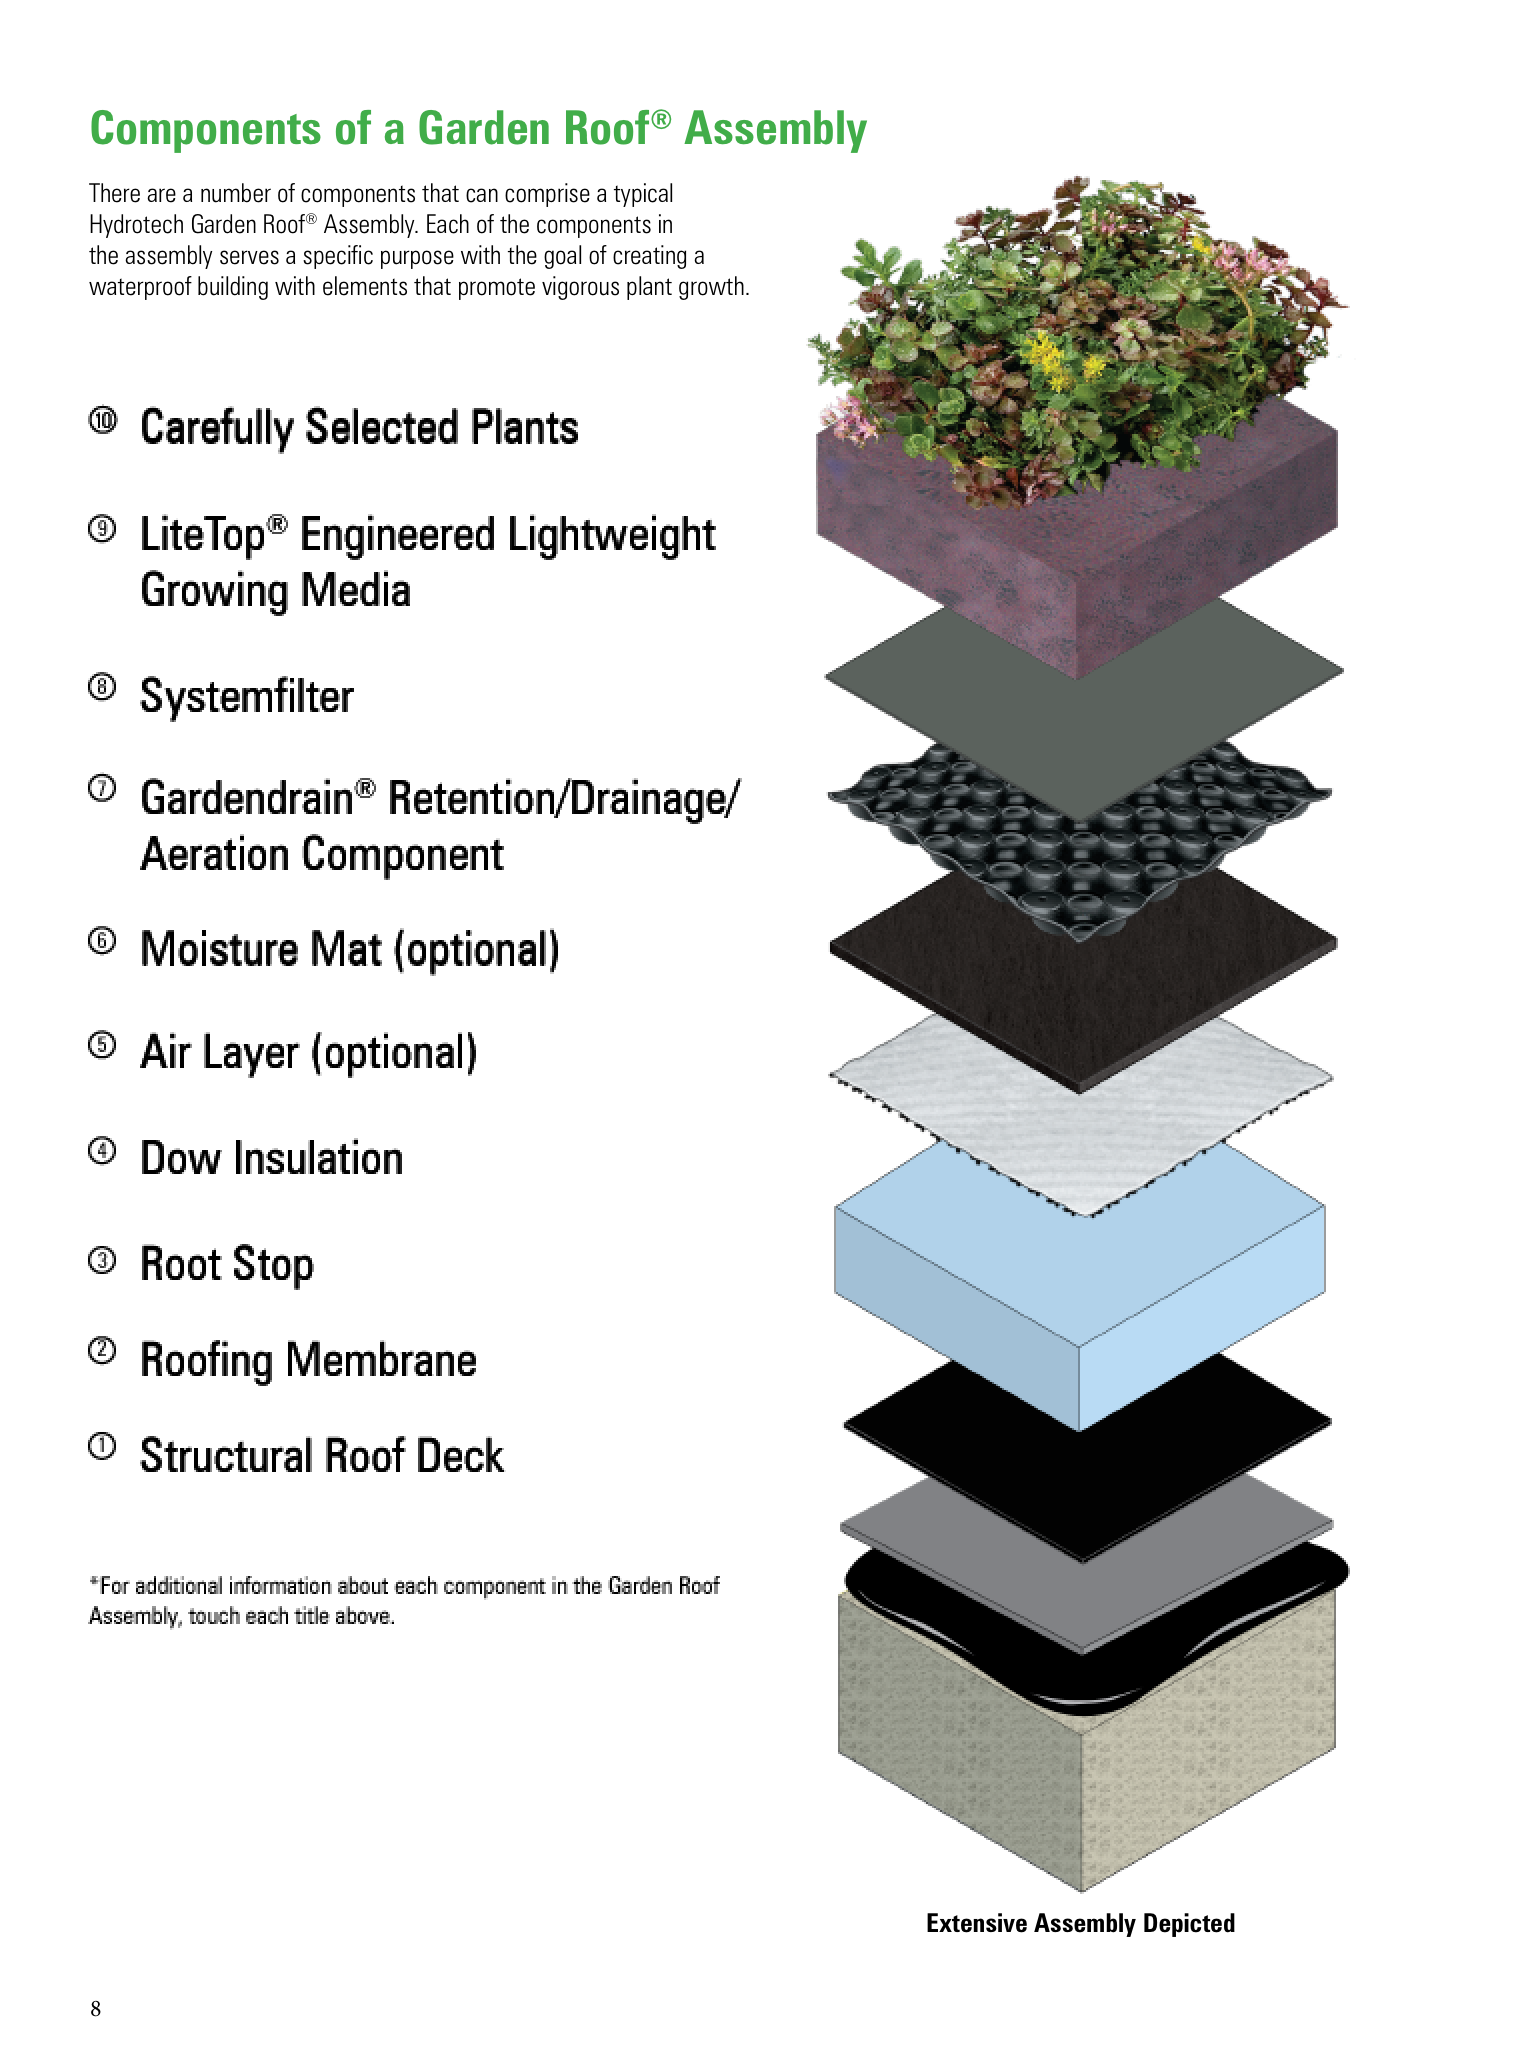 Hydrotech Green Roof Google Search Plant Growth Green Roof Aerator